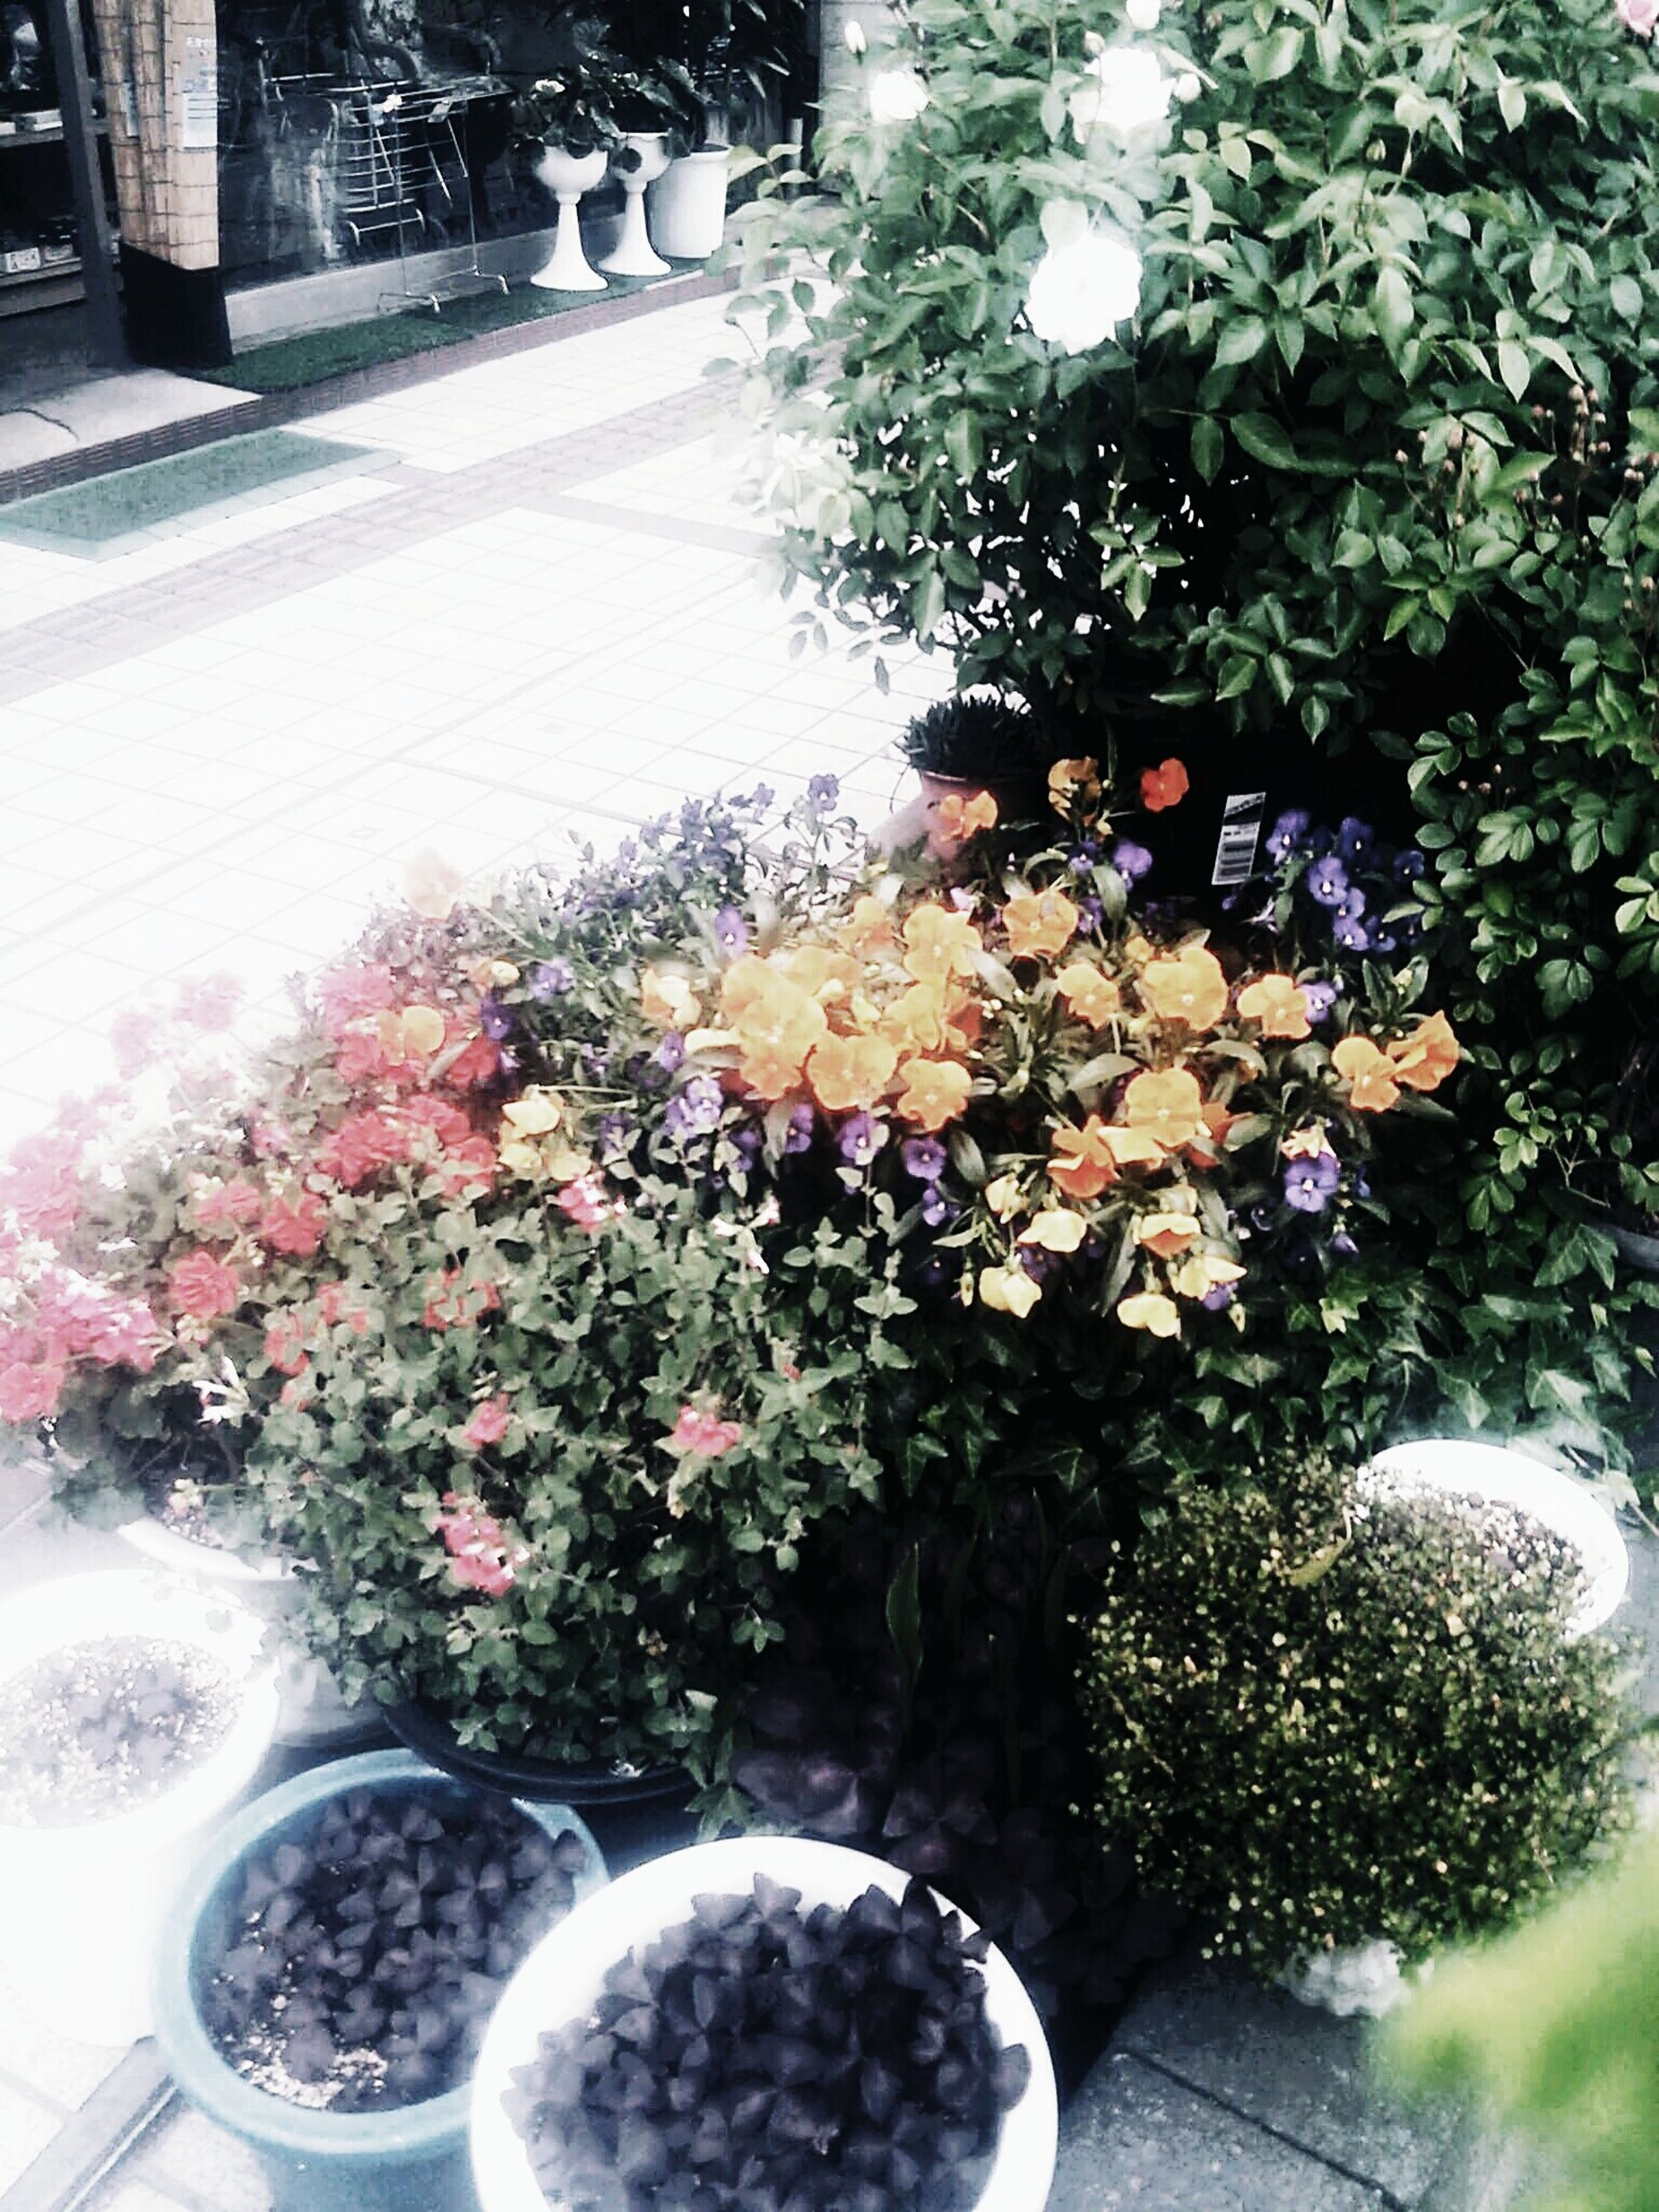 flower, plant, growth, potted plant, tree, freshness, high angle view, street, land vehicle, fragility, flower pot, outdoors, nature, city, building exterior, day, sunlight, no people, decoration, front or back yard